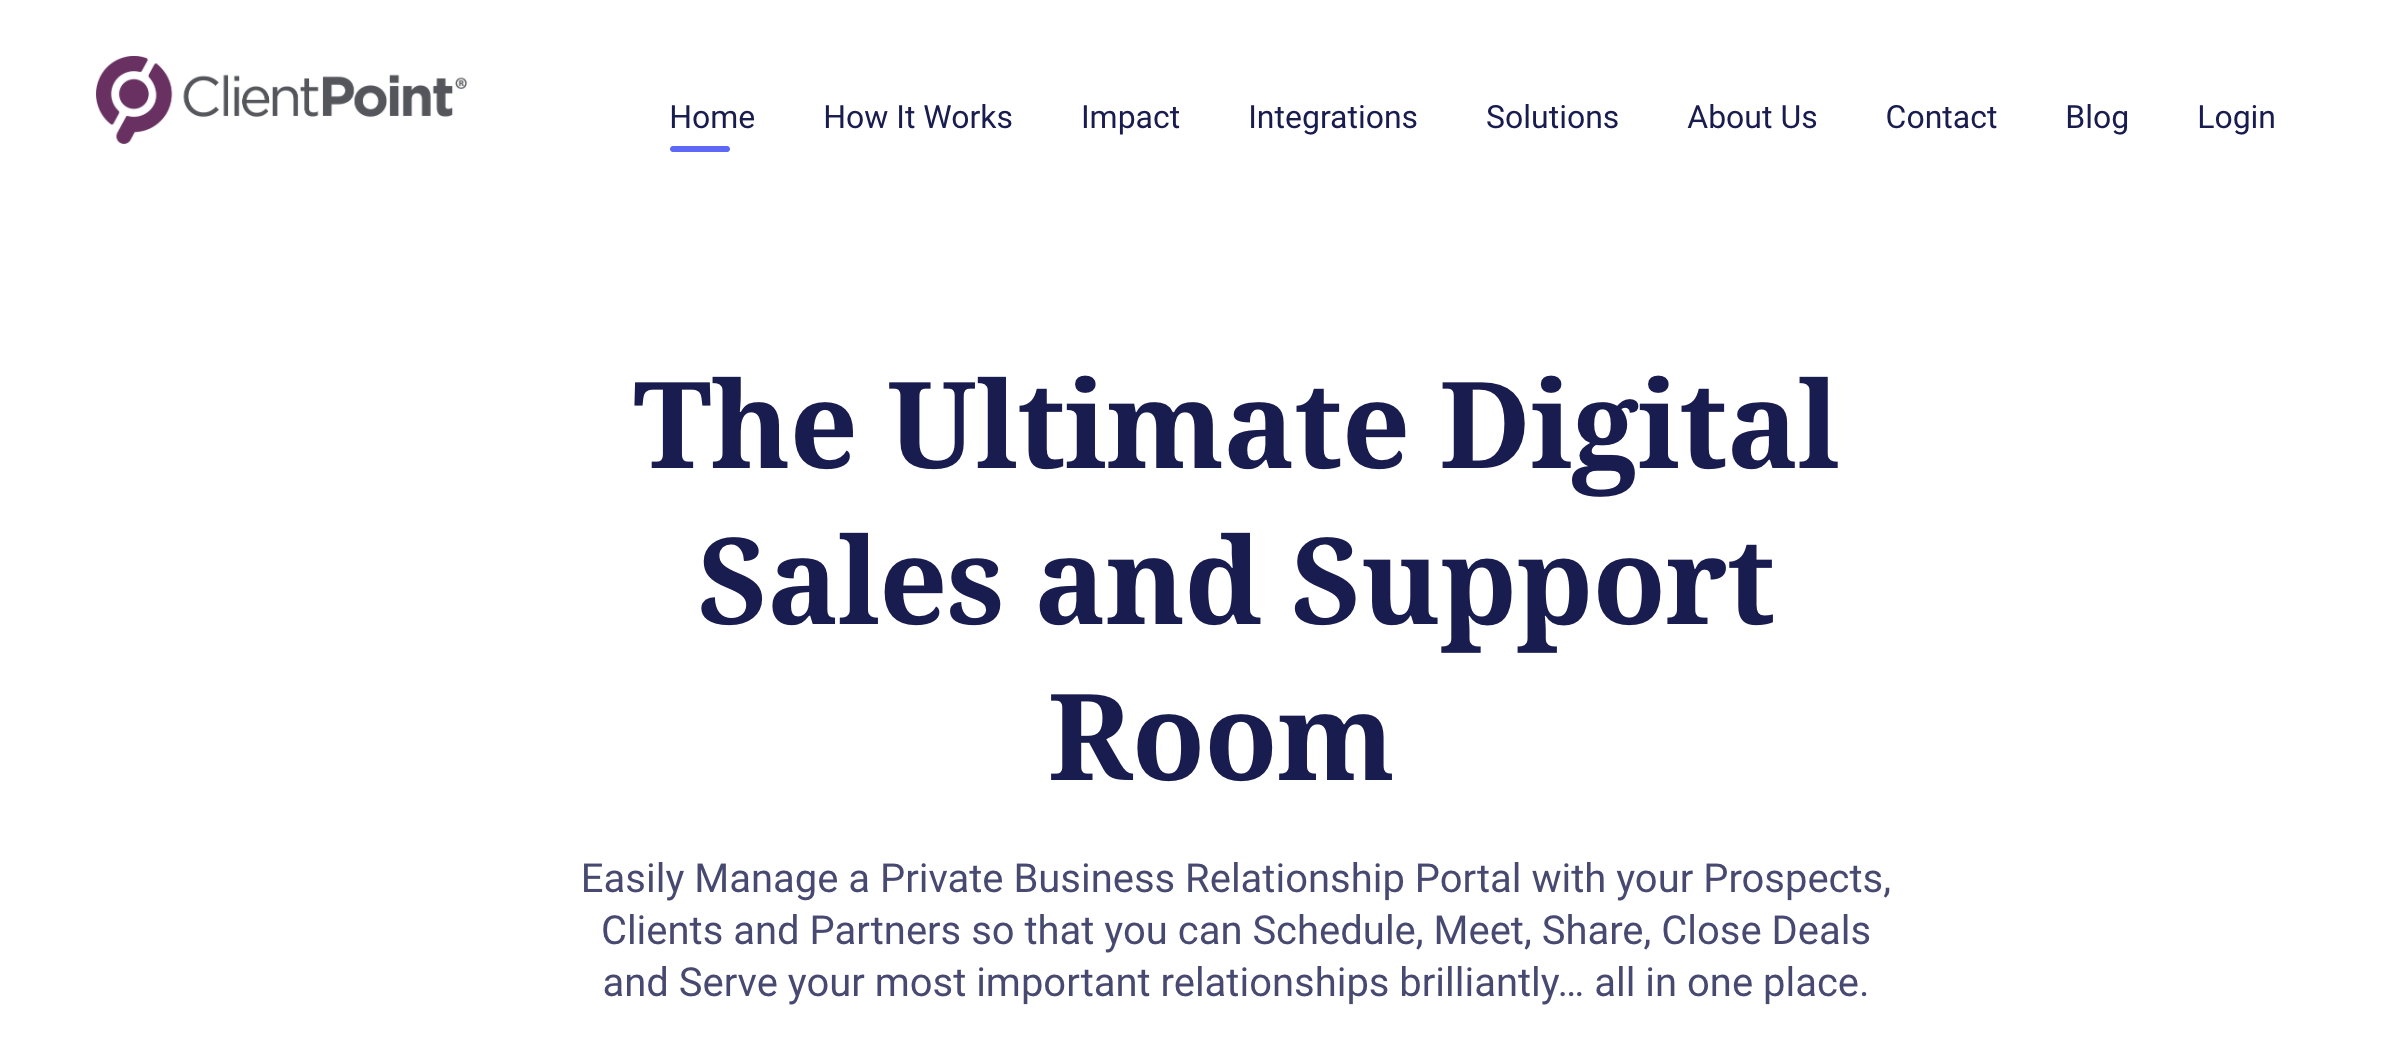 clientpoint sales quotes software